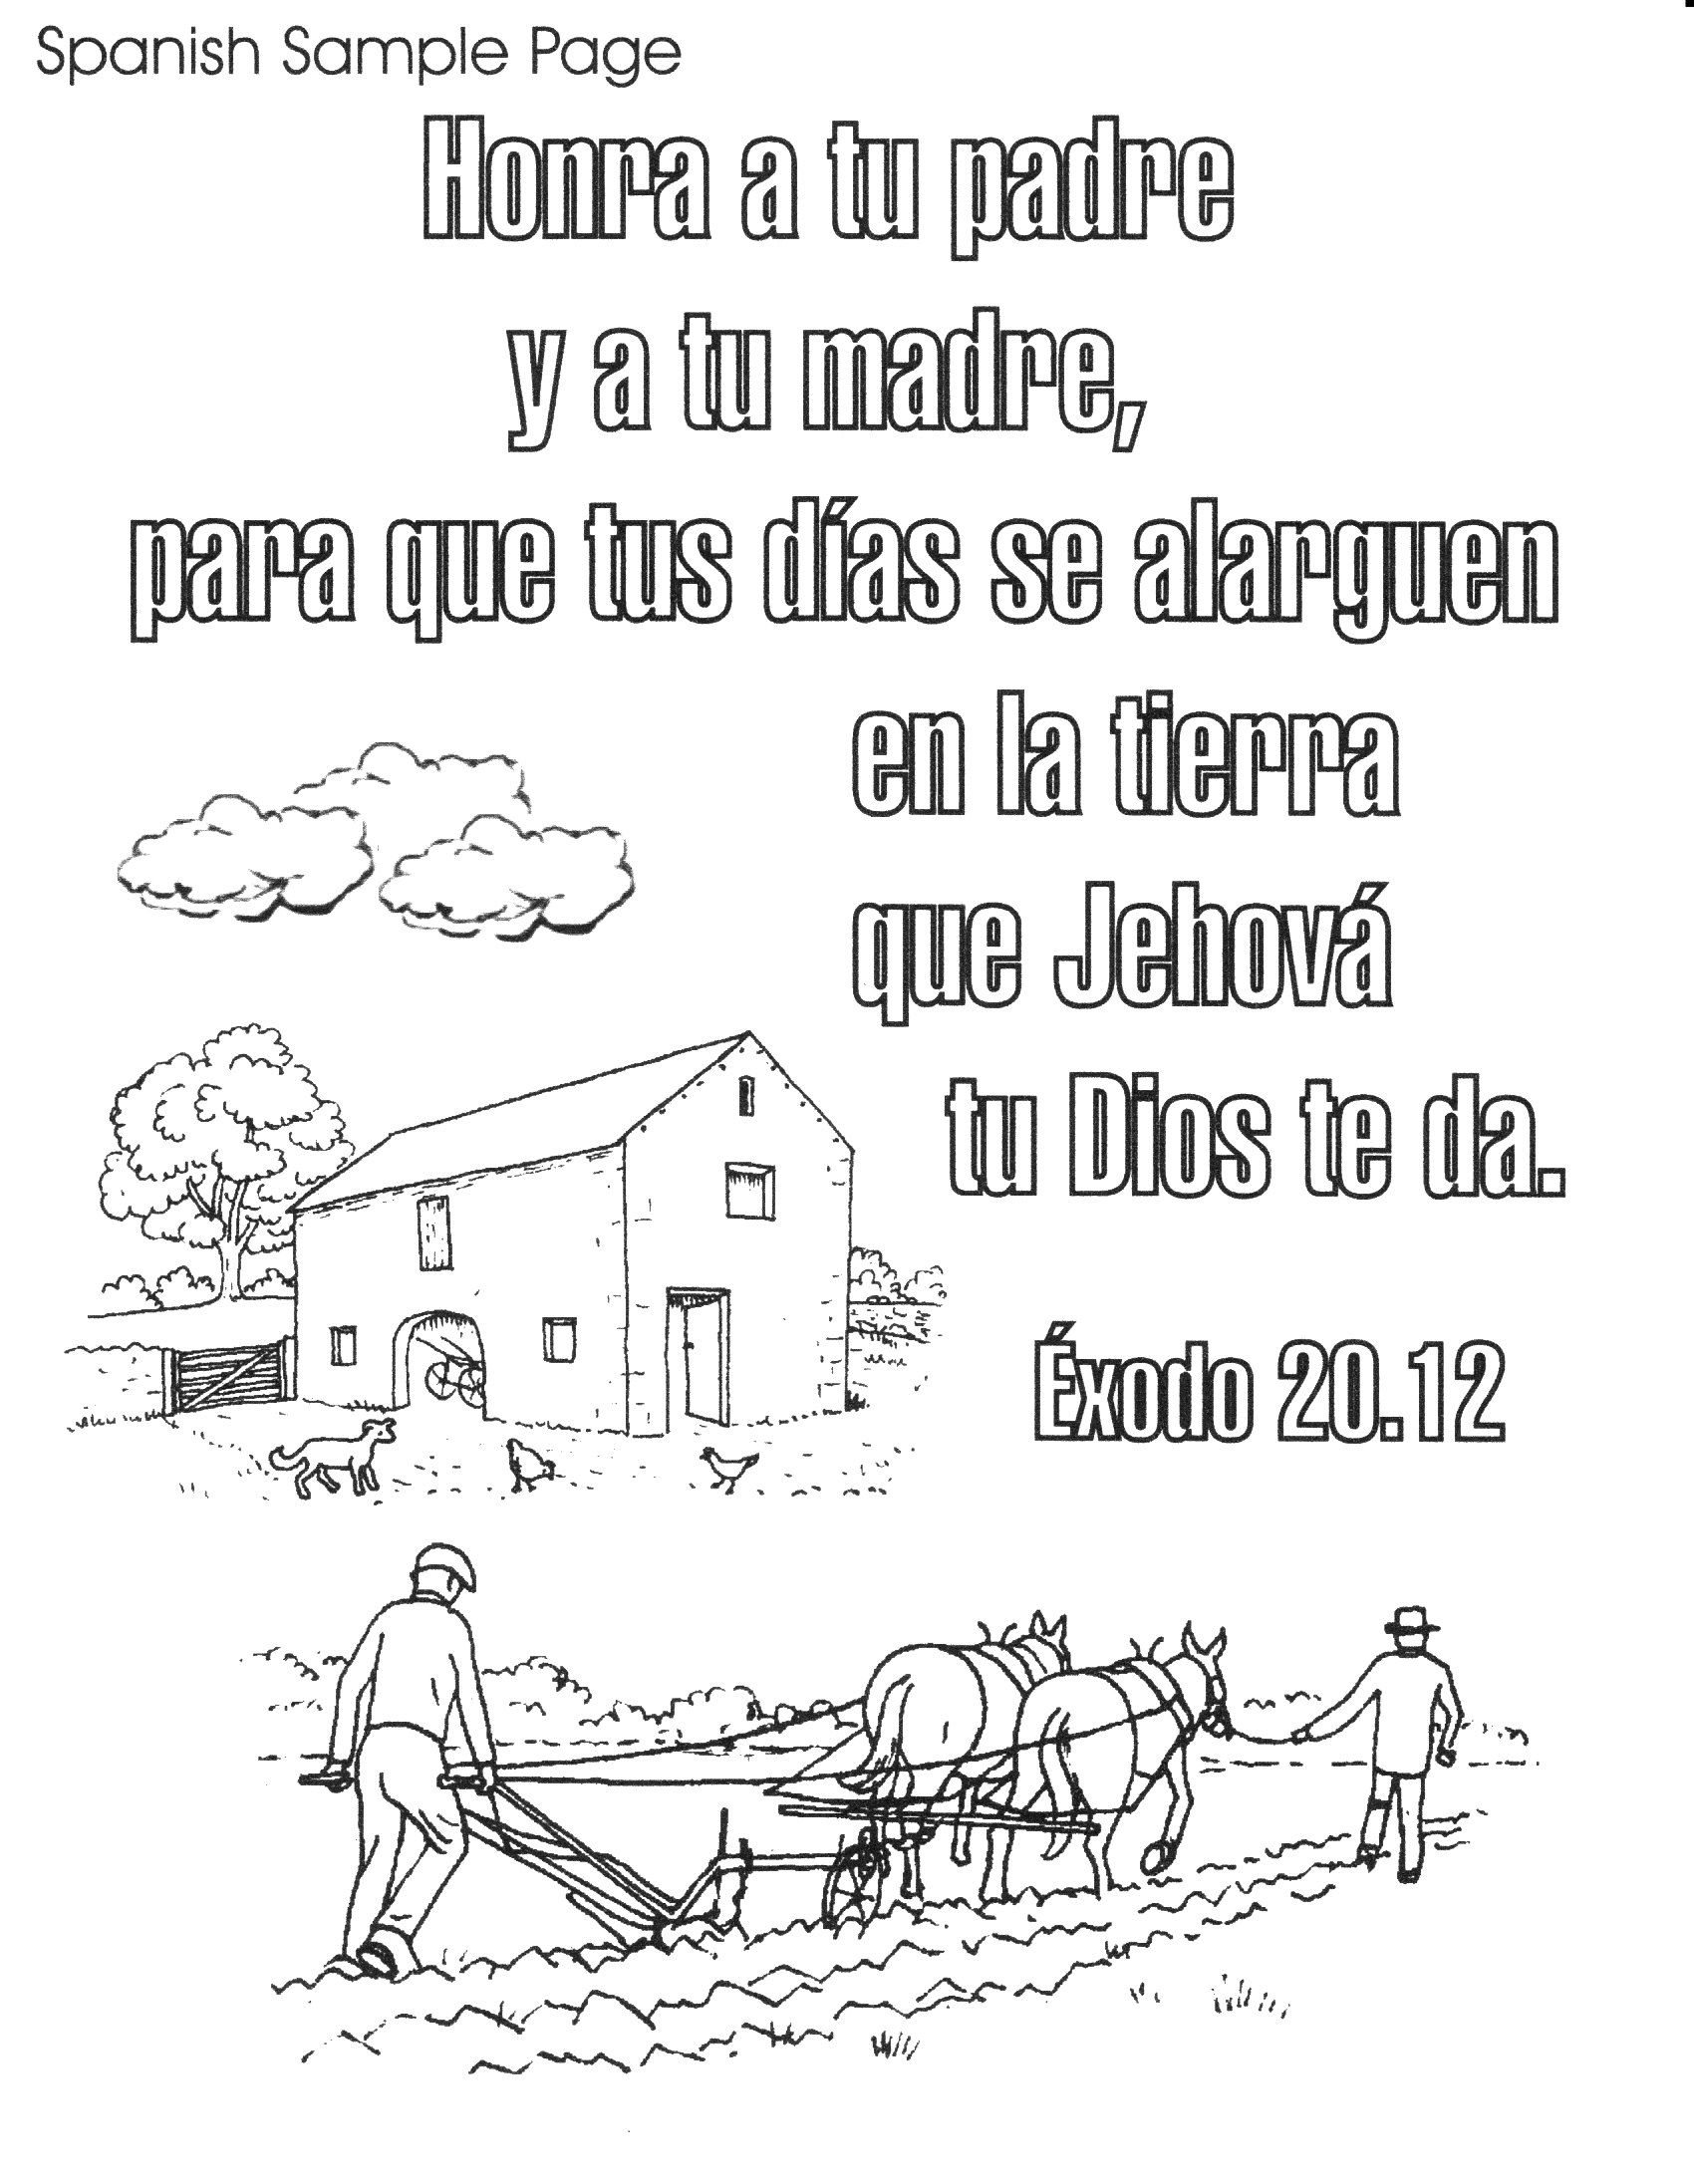 Printable coloring pages about the bible - Bible Spanish Coloring Pages Free Printable Spanish Bible Verse Coloring Book